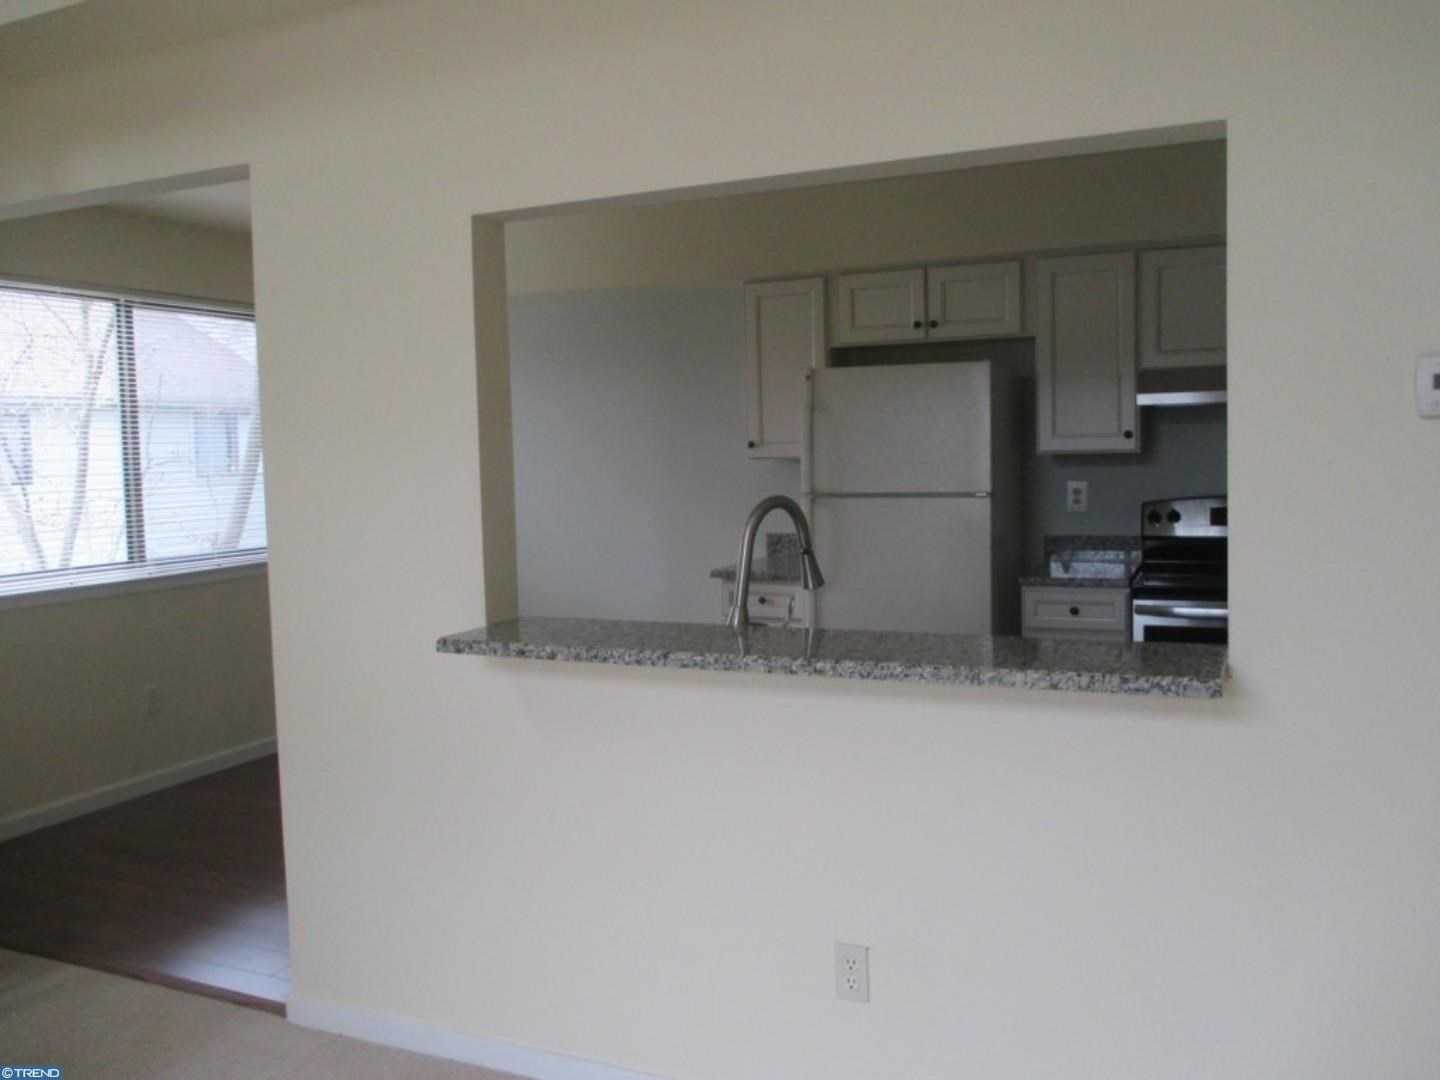 2 Bedroom Apartments For Rent In Paterson Nj .